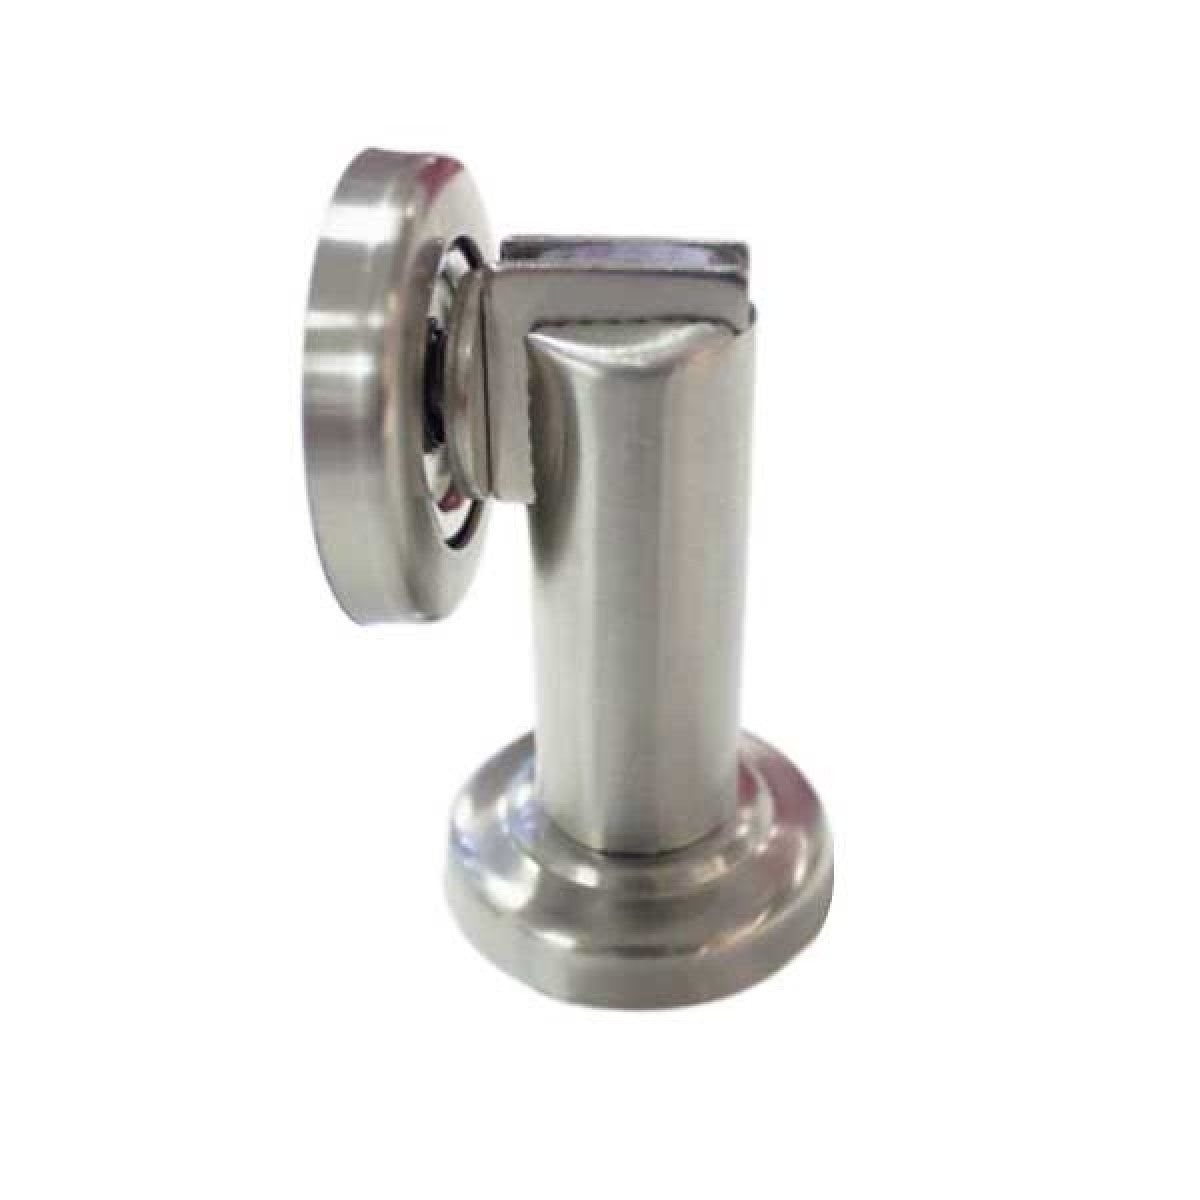 PPK Stainless Steel Adjustable Door Stopper  sc 1 st  Home-Fix & PPK Stainless Steel Adjustable Door Stopper - Homefix Online